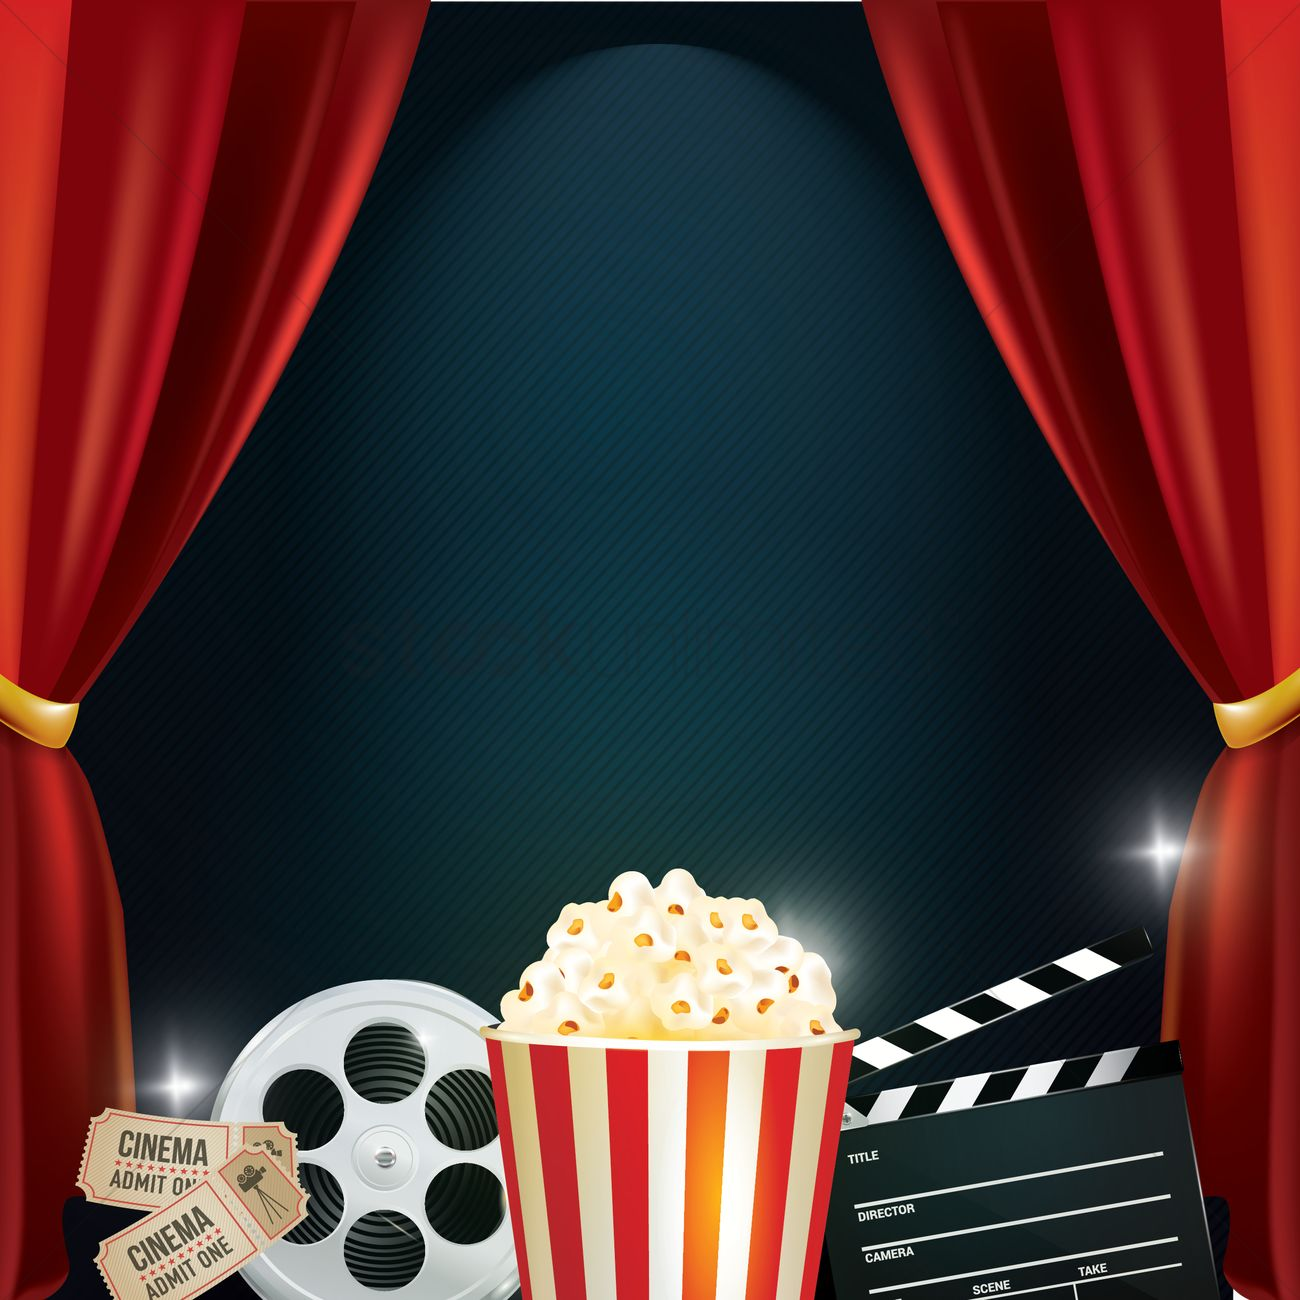 Cinema background with movie objects Vector Image.